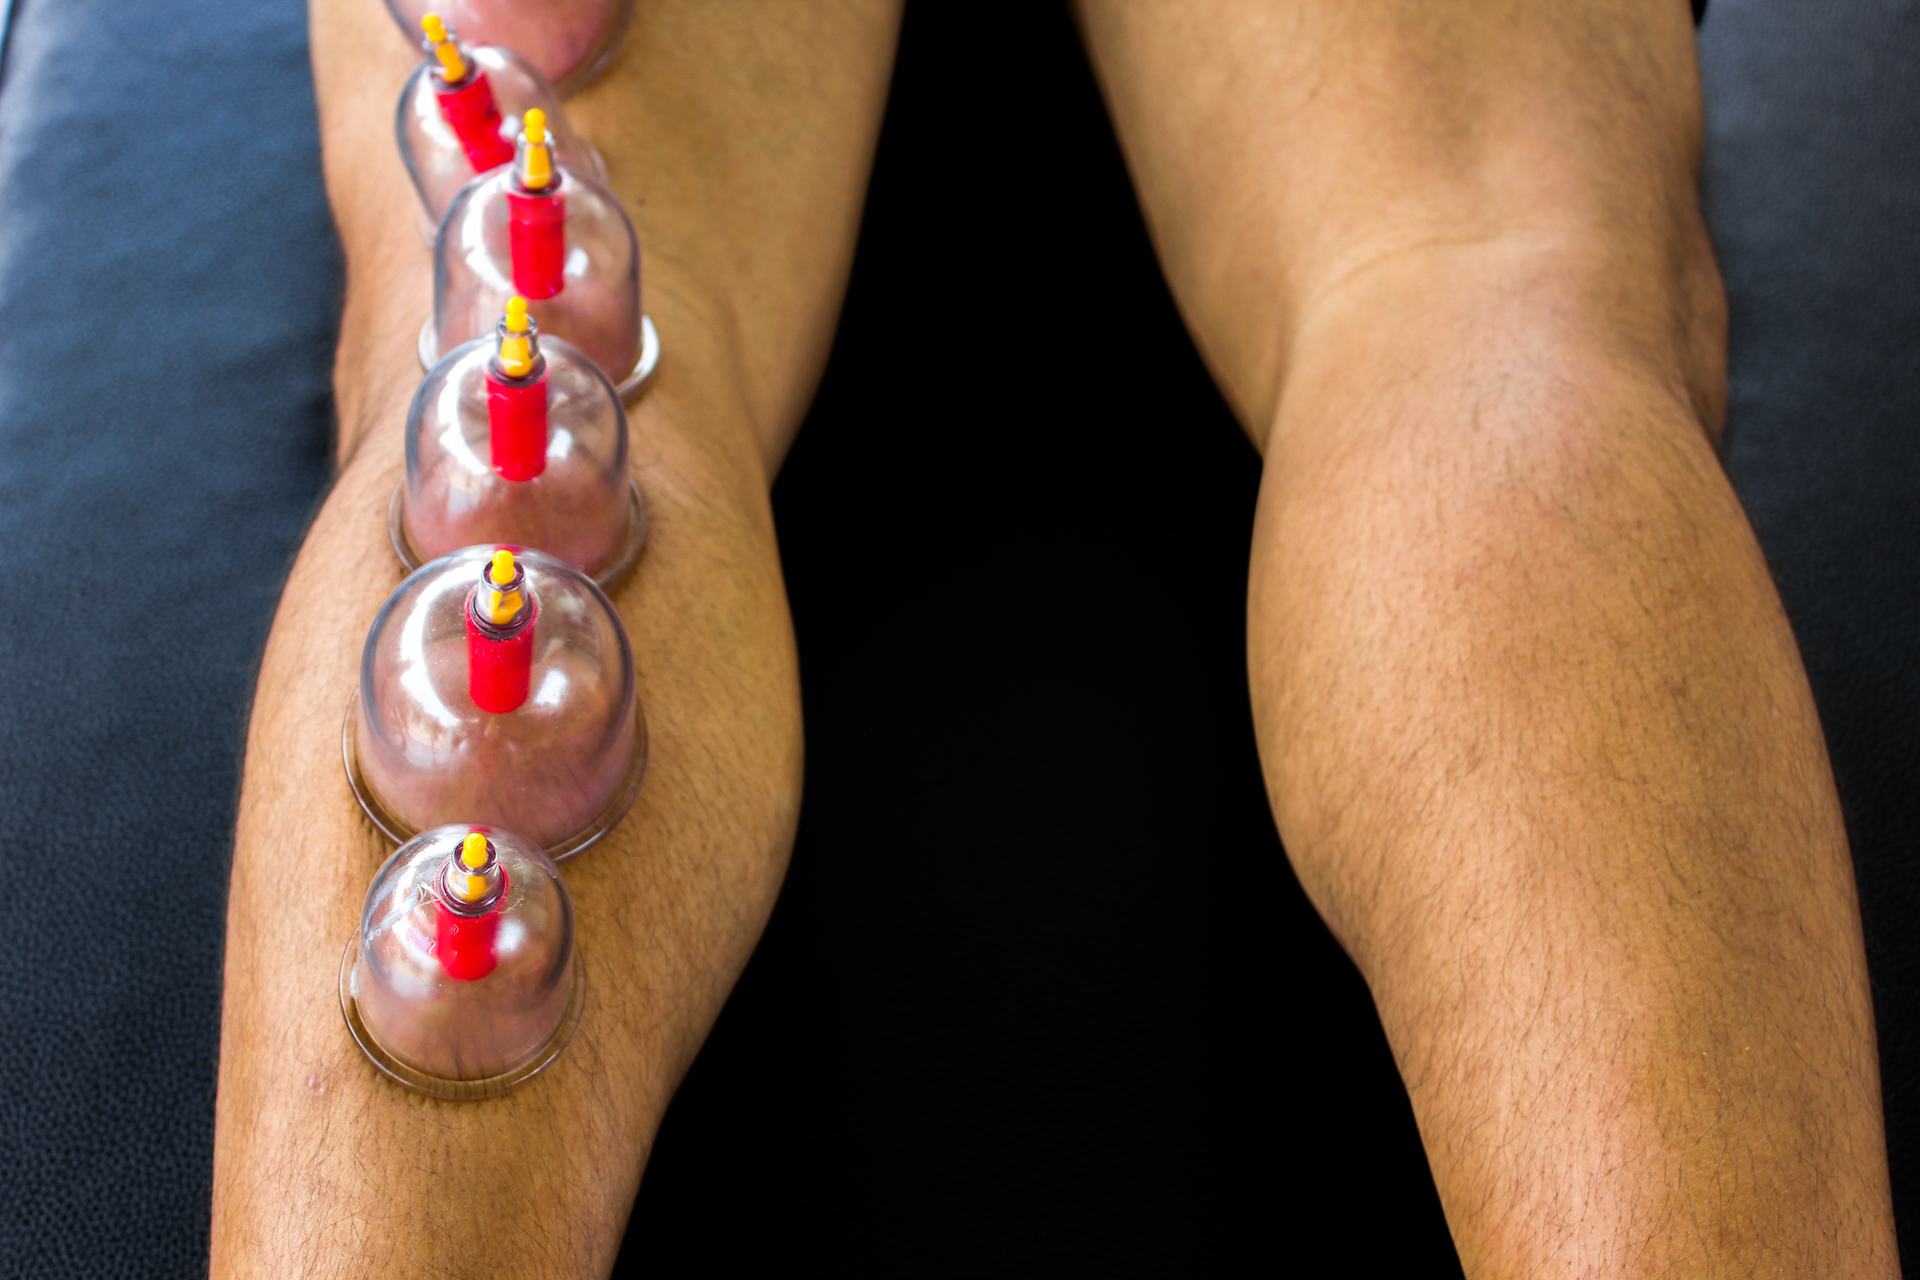 Massage cupping is used to relieve back and neck pain, stiff muscles, anxiety, fatigue, migraines, treatment for high blood pressure, rheumatoid arthritis, fibromyalgia, and even cellulite.